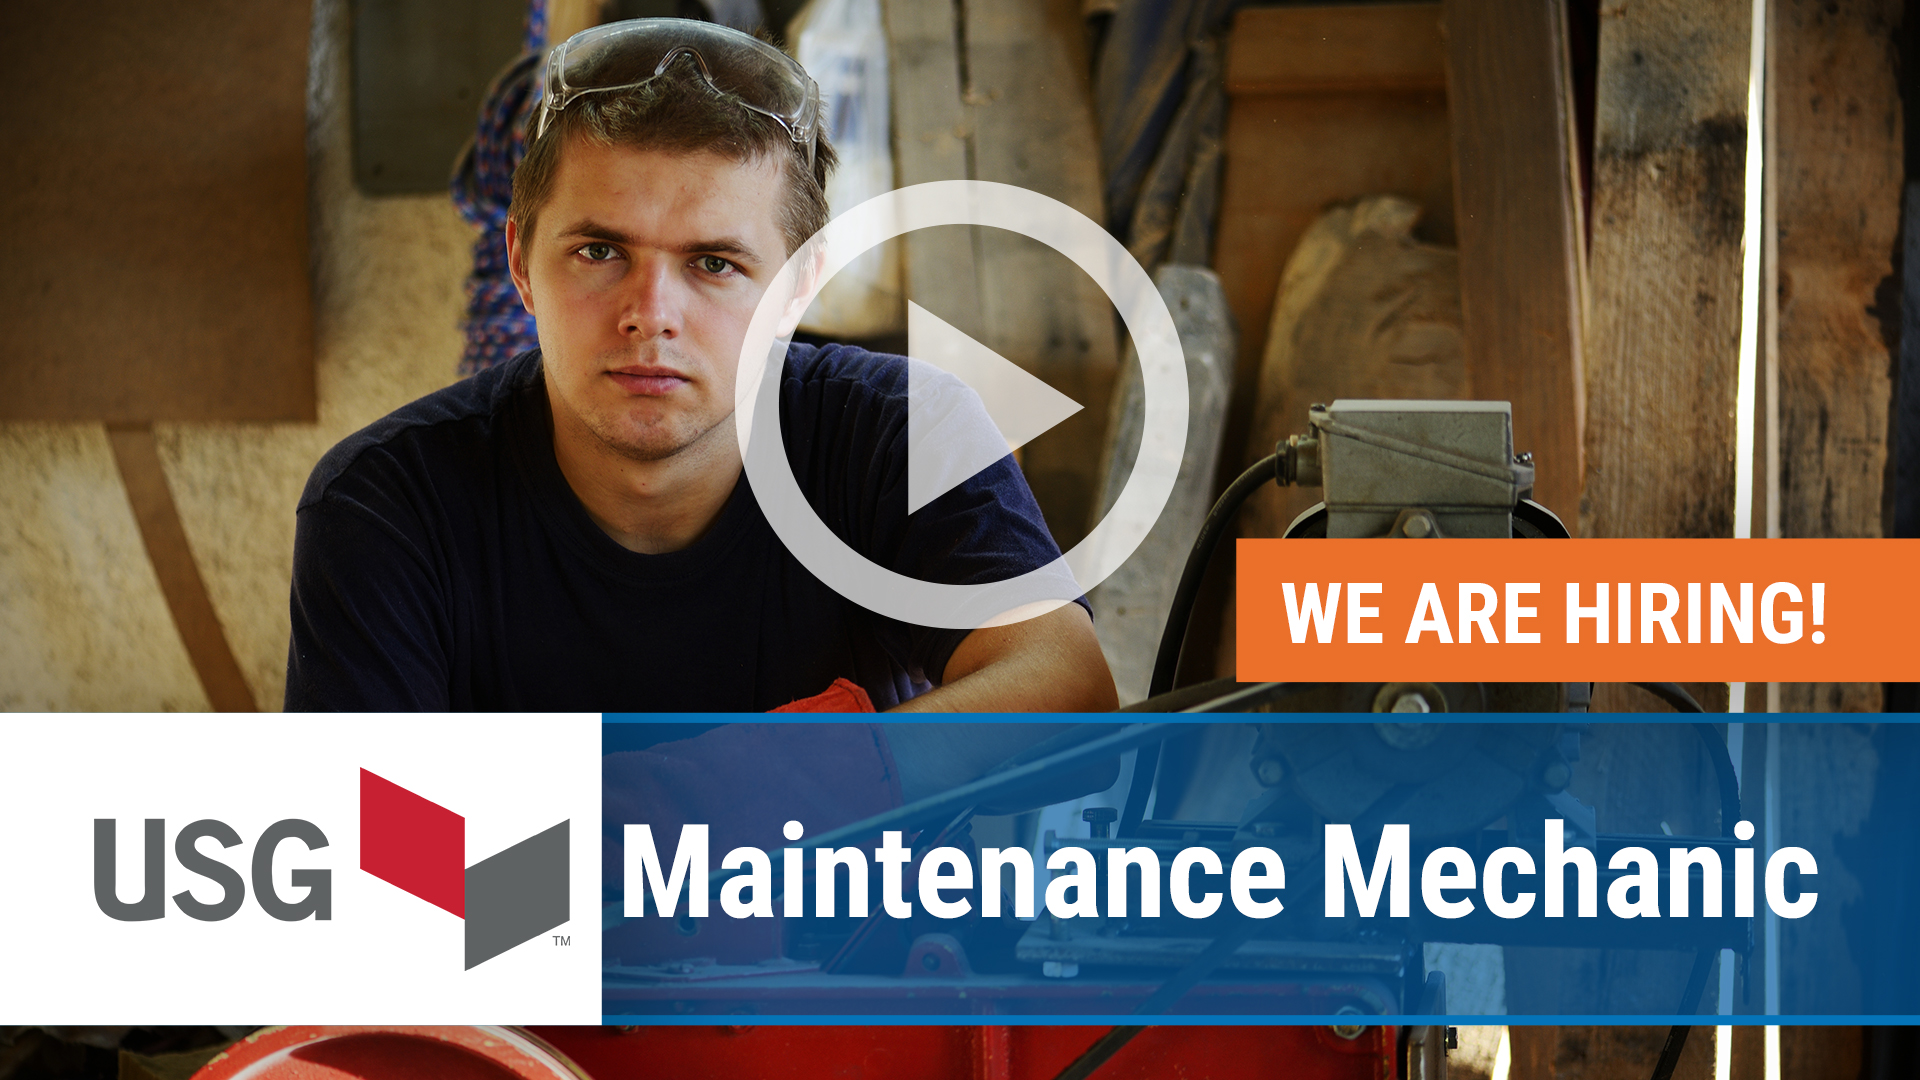 Watch our careers video for available job opening Maintenance Mechanic in El Centro, CA, USA